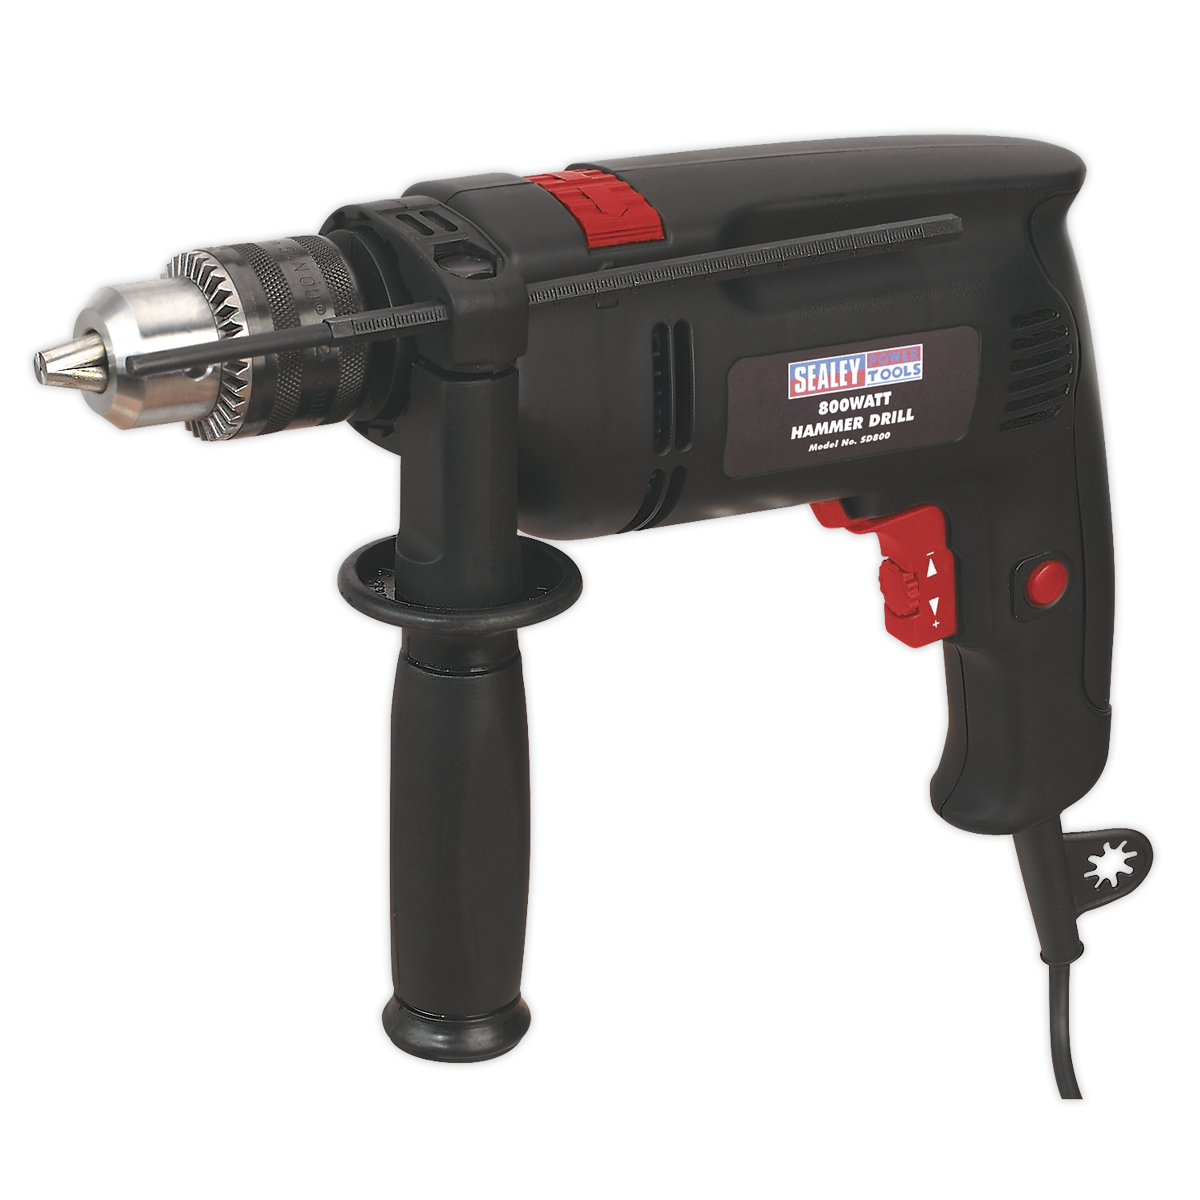 Hammer Drill 13mm Variable Speed with Reverse 850W/230V